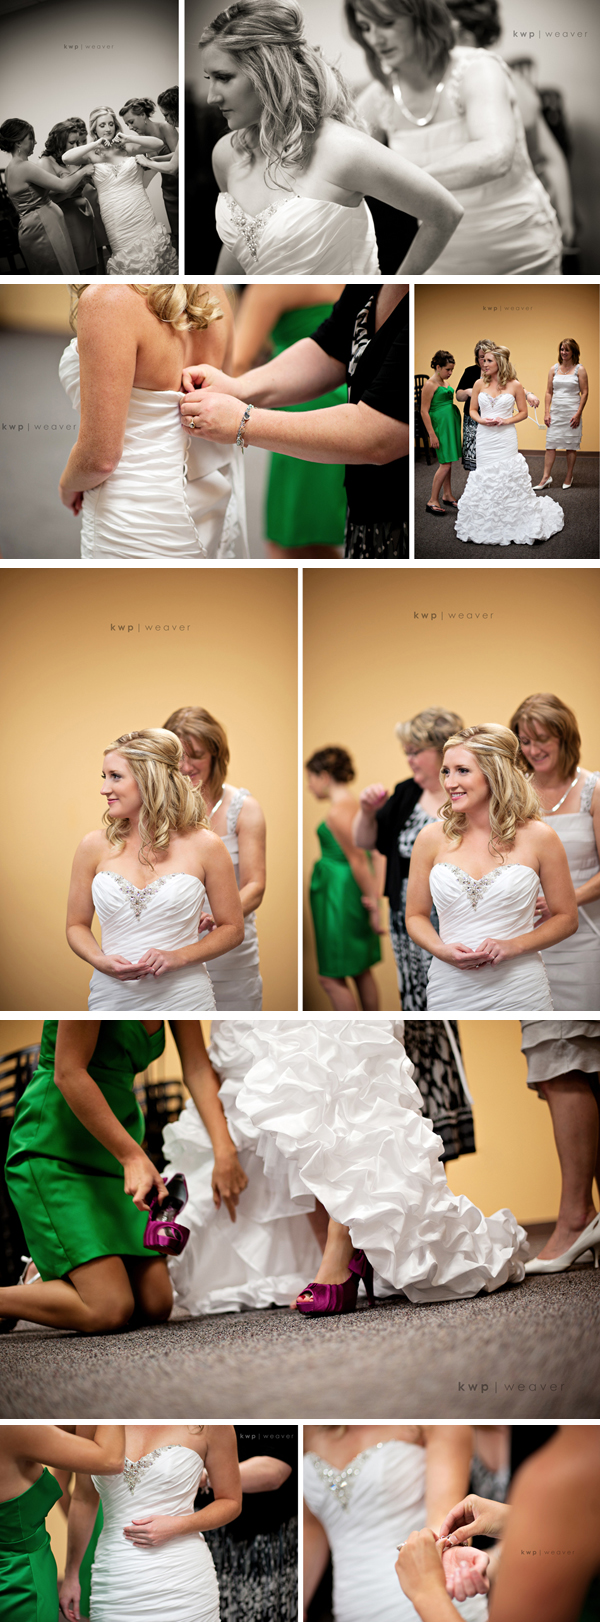 Kristen Weaver Photography - Orlando Wedding Photography